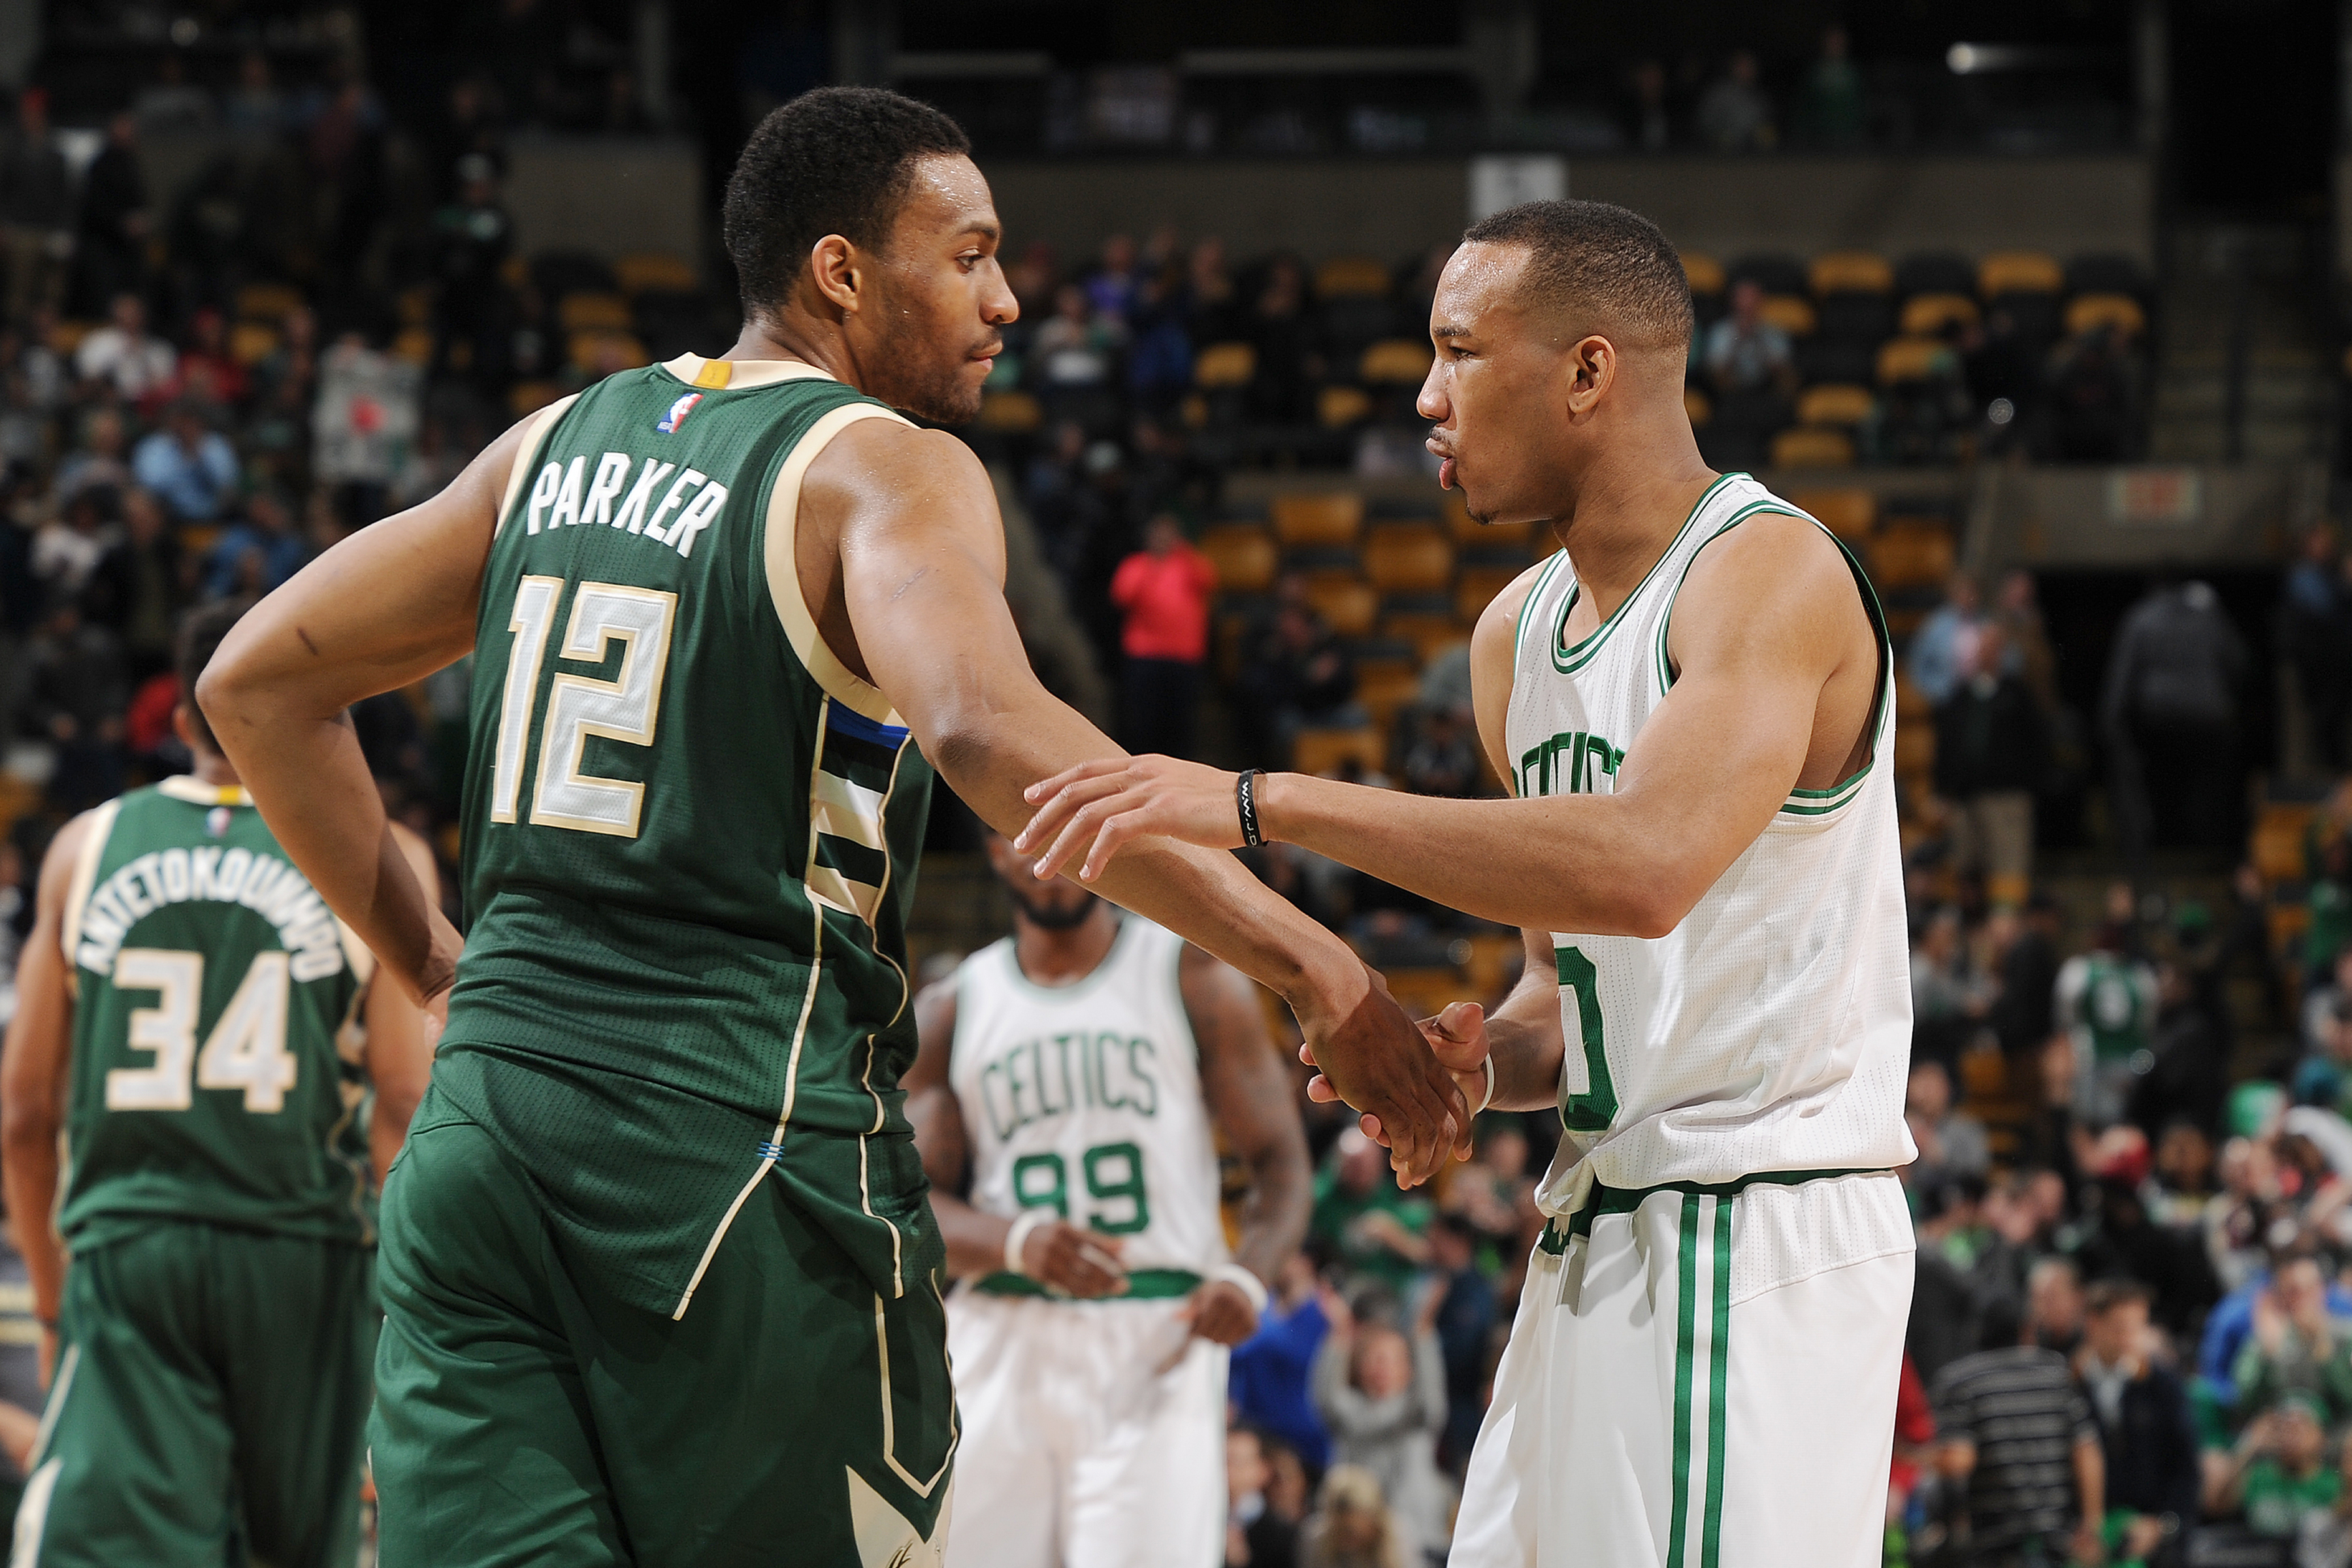 BOSTON, MA - FEBRUARY 25:  Jabari Parker #12 of the Milwaukee Bucks shakes hands with Avery Bradley #0 of the Boston Celtics after the game on February 25, 2016 at the TD Garden in Boston, Massachusetts.  (Photo by Steve Babineau/NBAE via Getty Images)